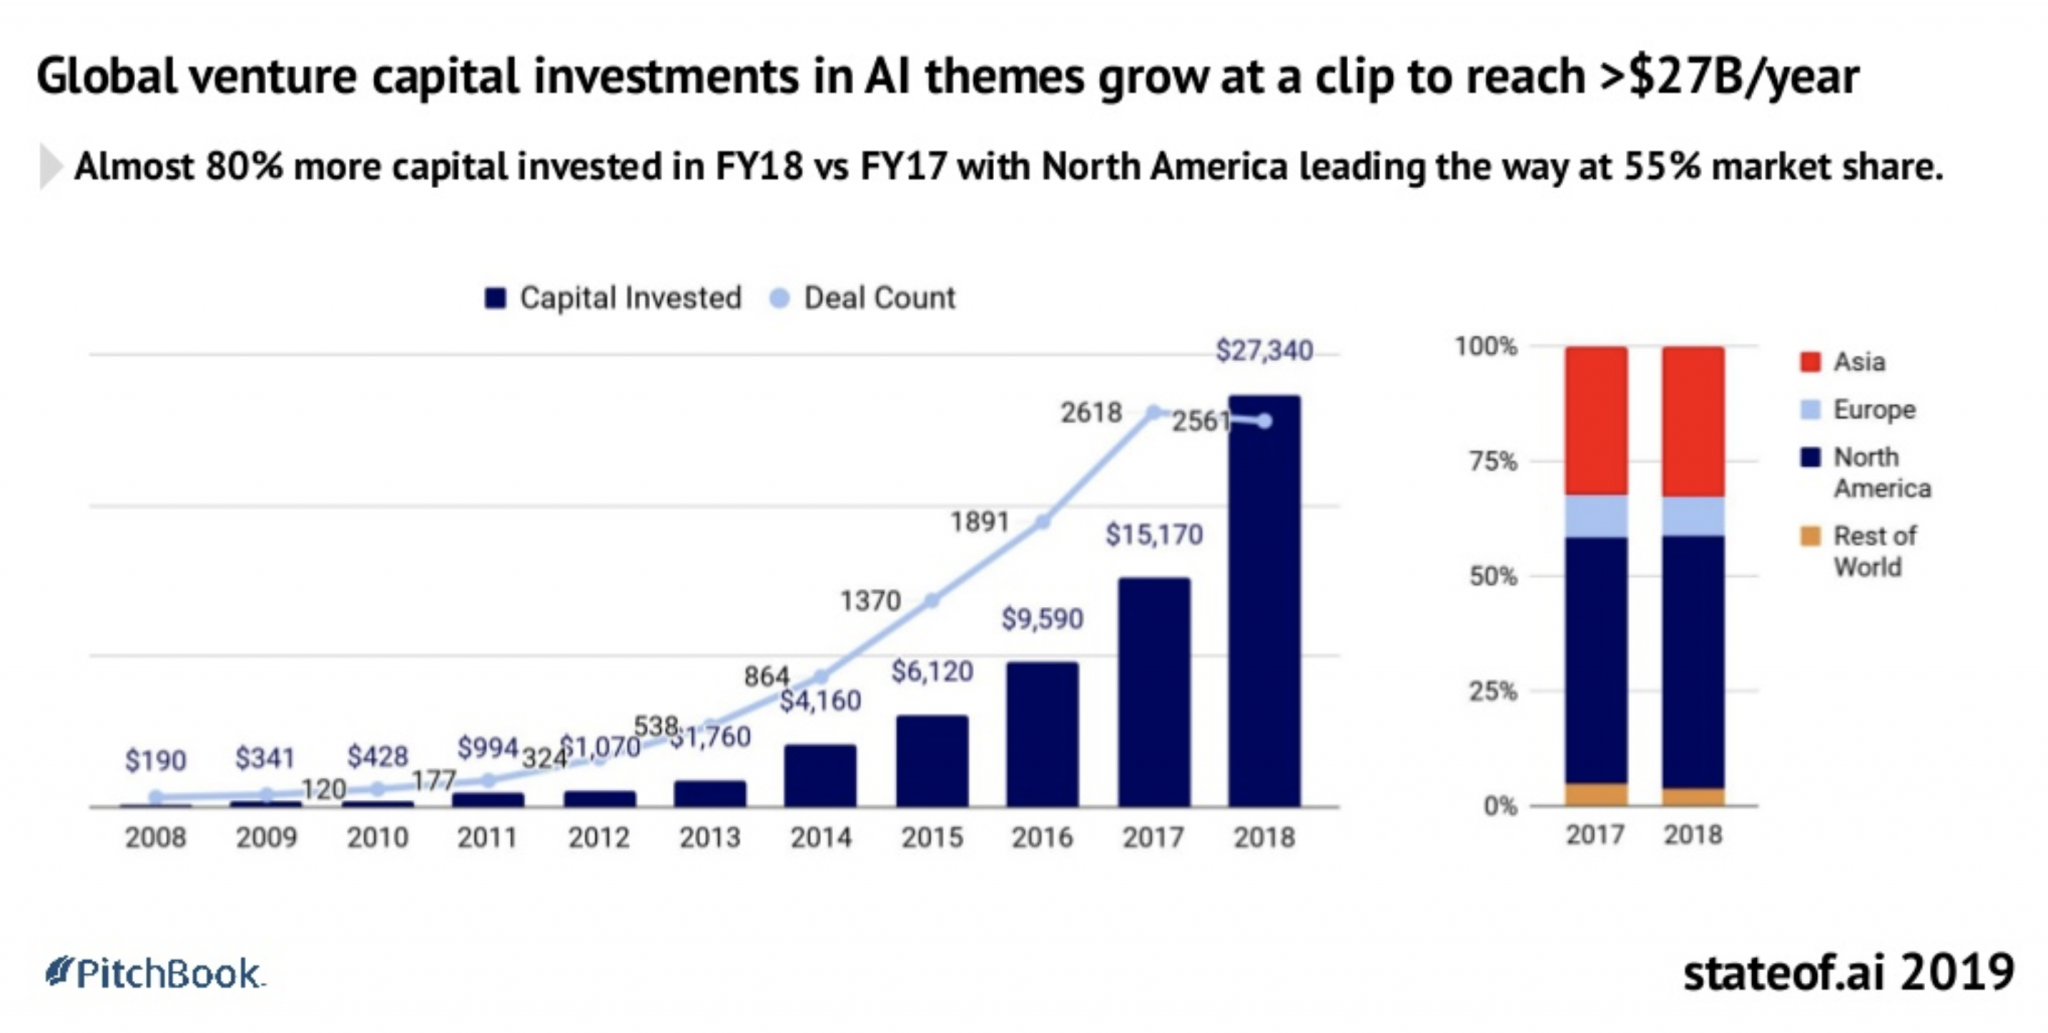 Graph showing the global venture capital investments in AI themes